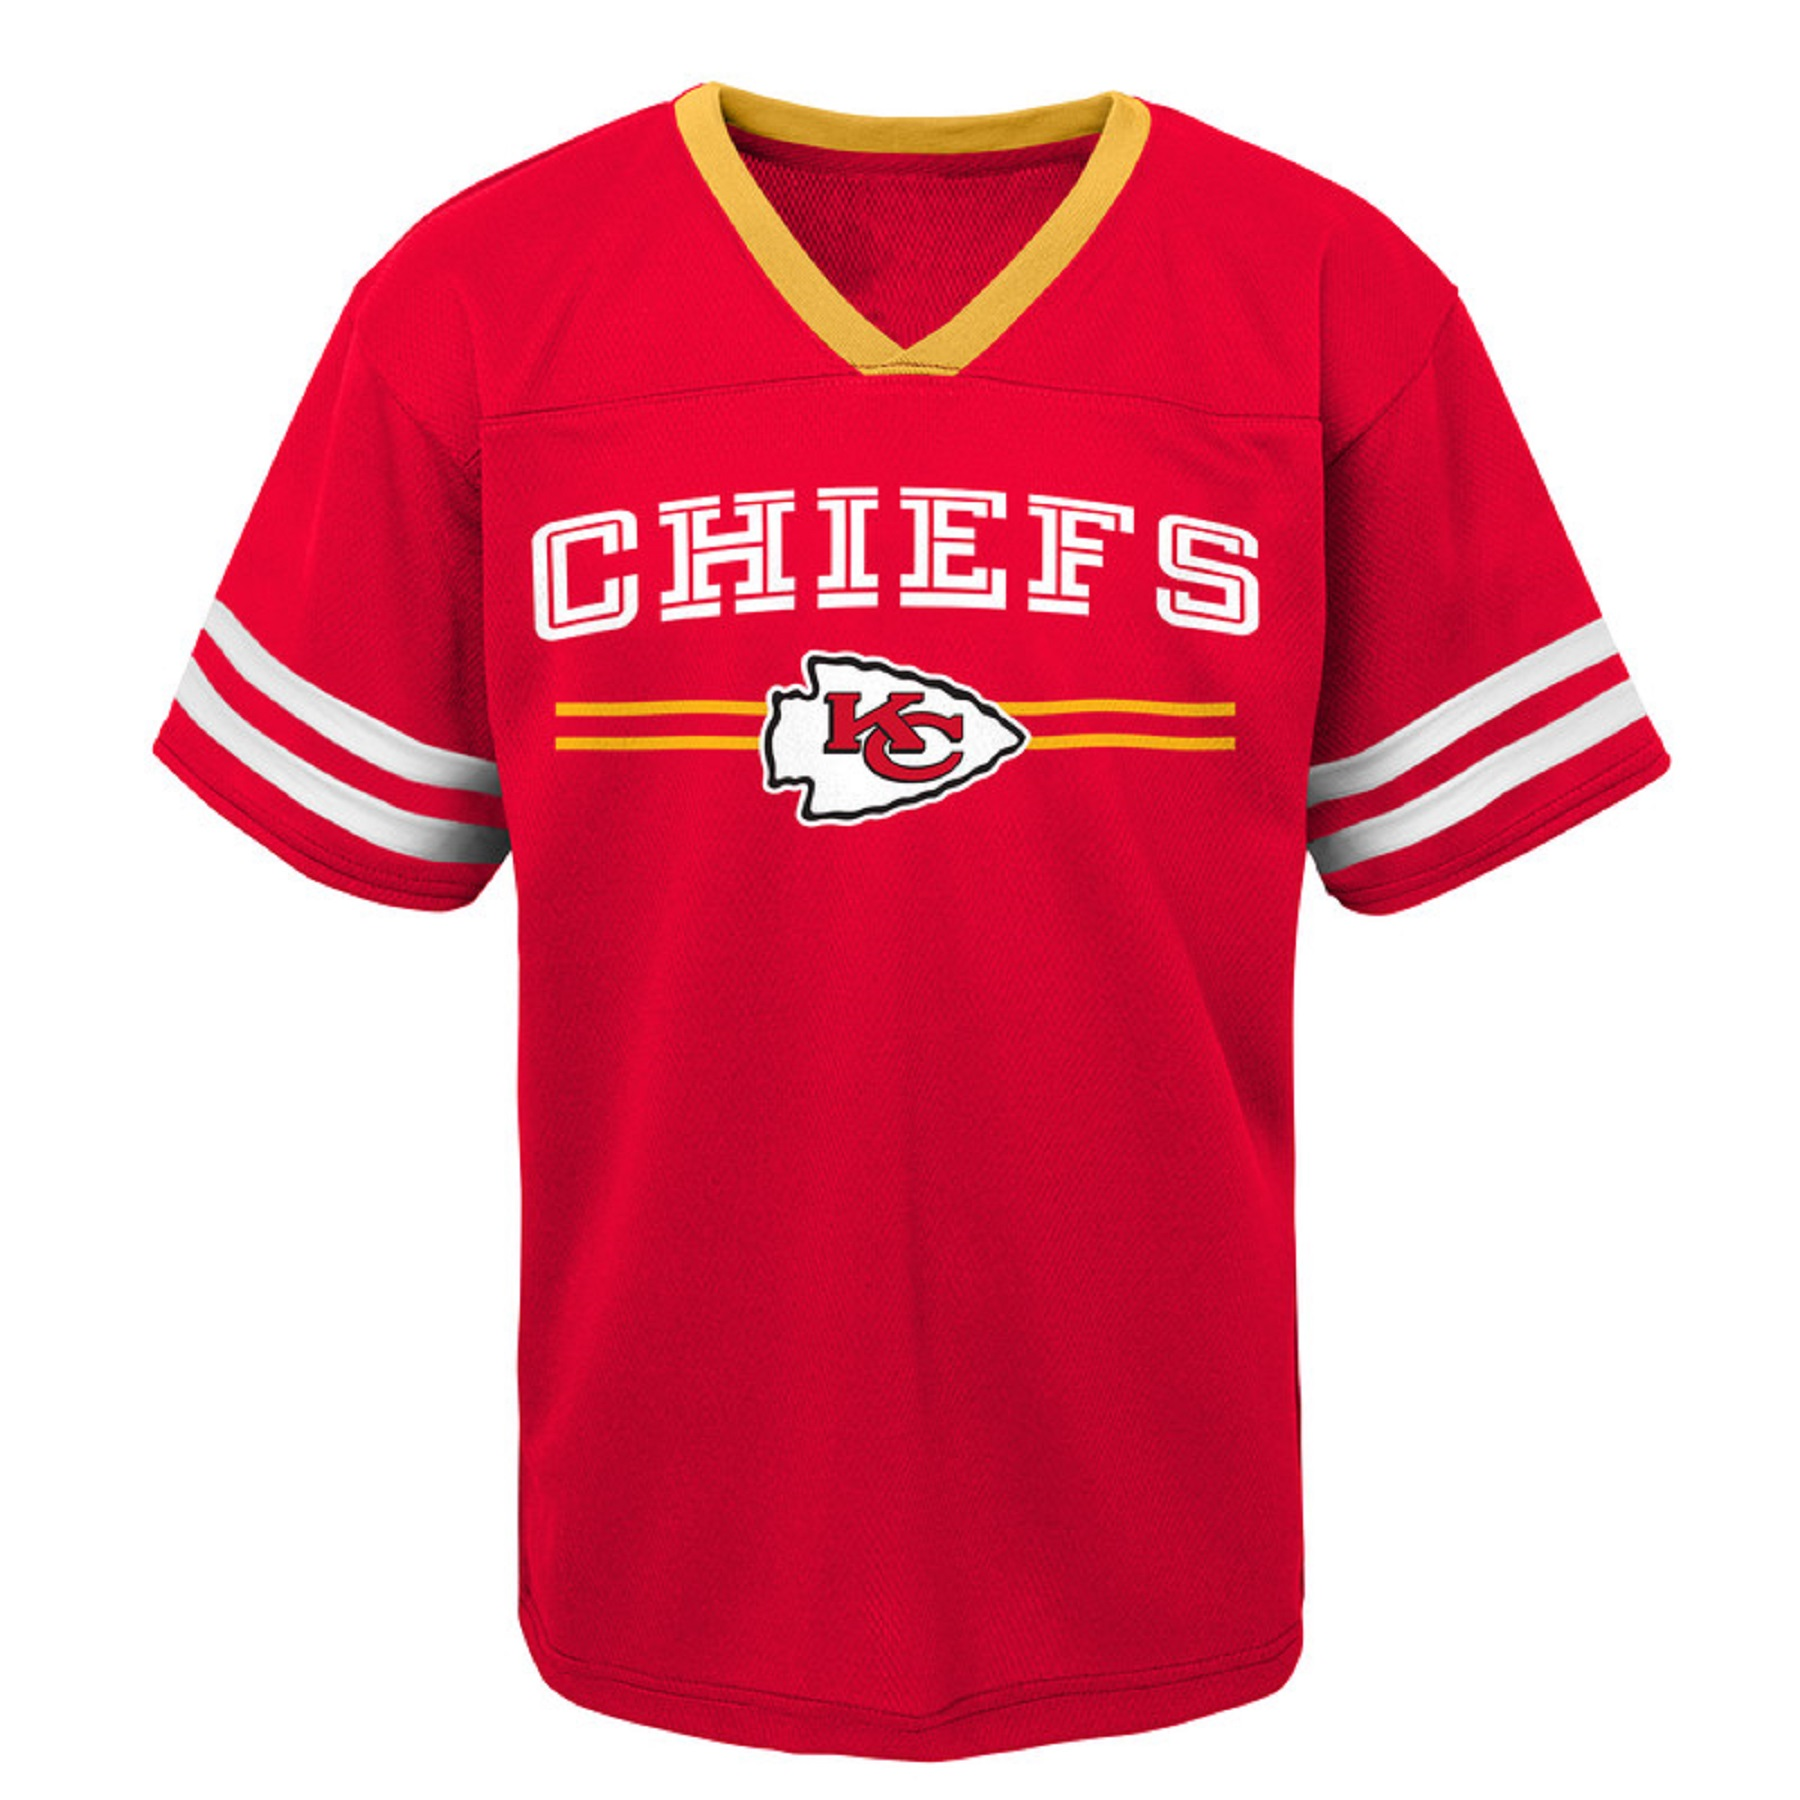 Youth Red Kansas City Chiefs Mesh V-Neck T-Shirt